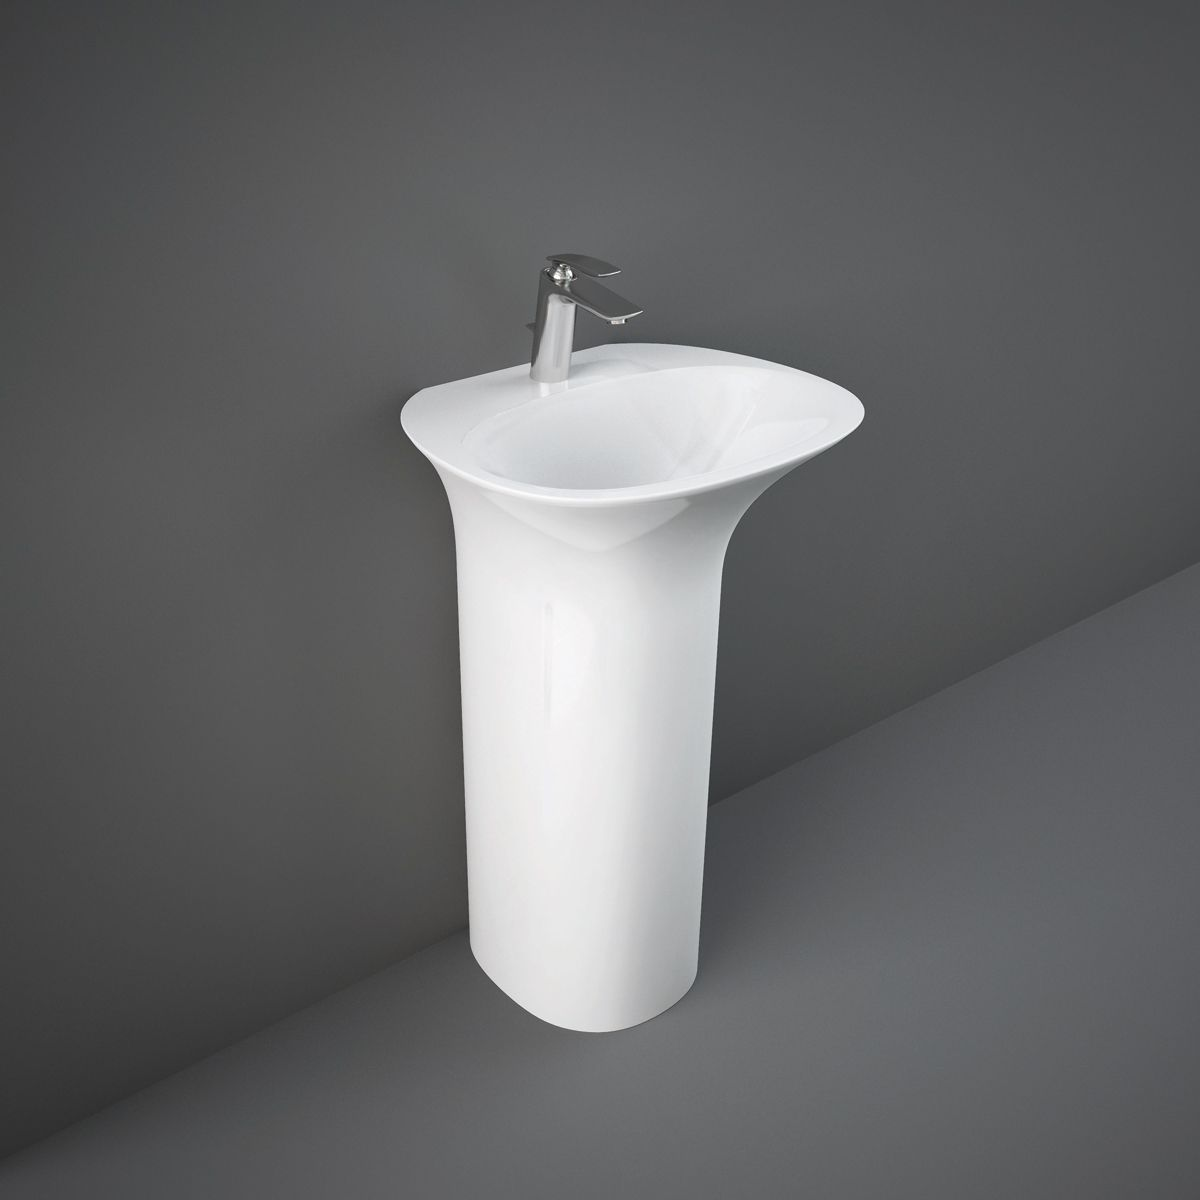 RAK Sensation Gloss White 1 Tap Hole Freestanding Basin 550mm